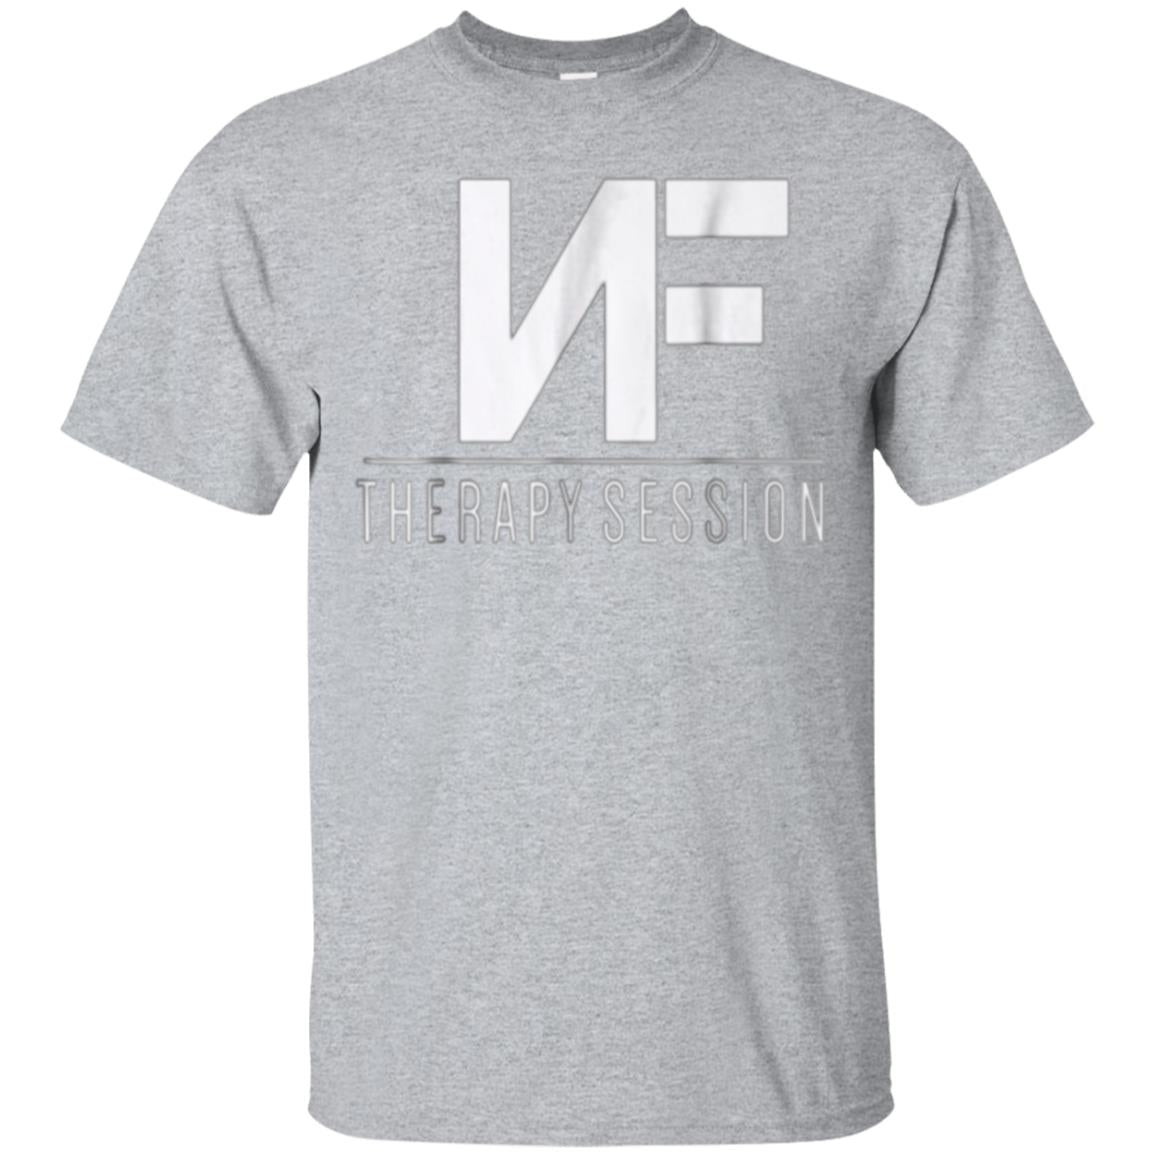 NF-THERAPY-SESSION-Tee-Tshirt 99promocode